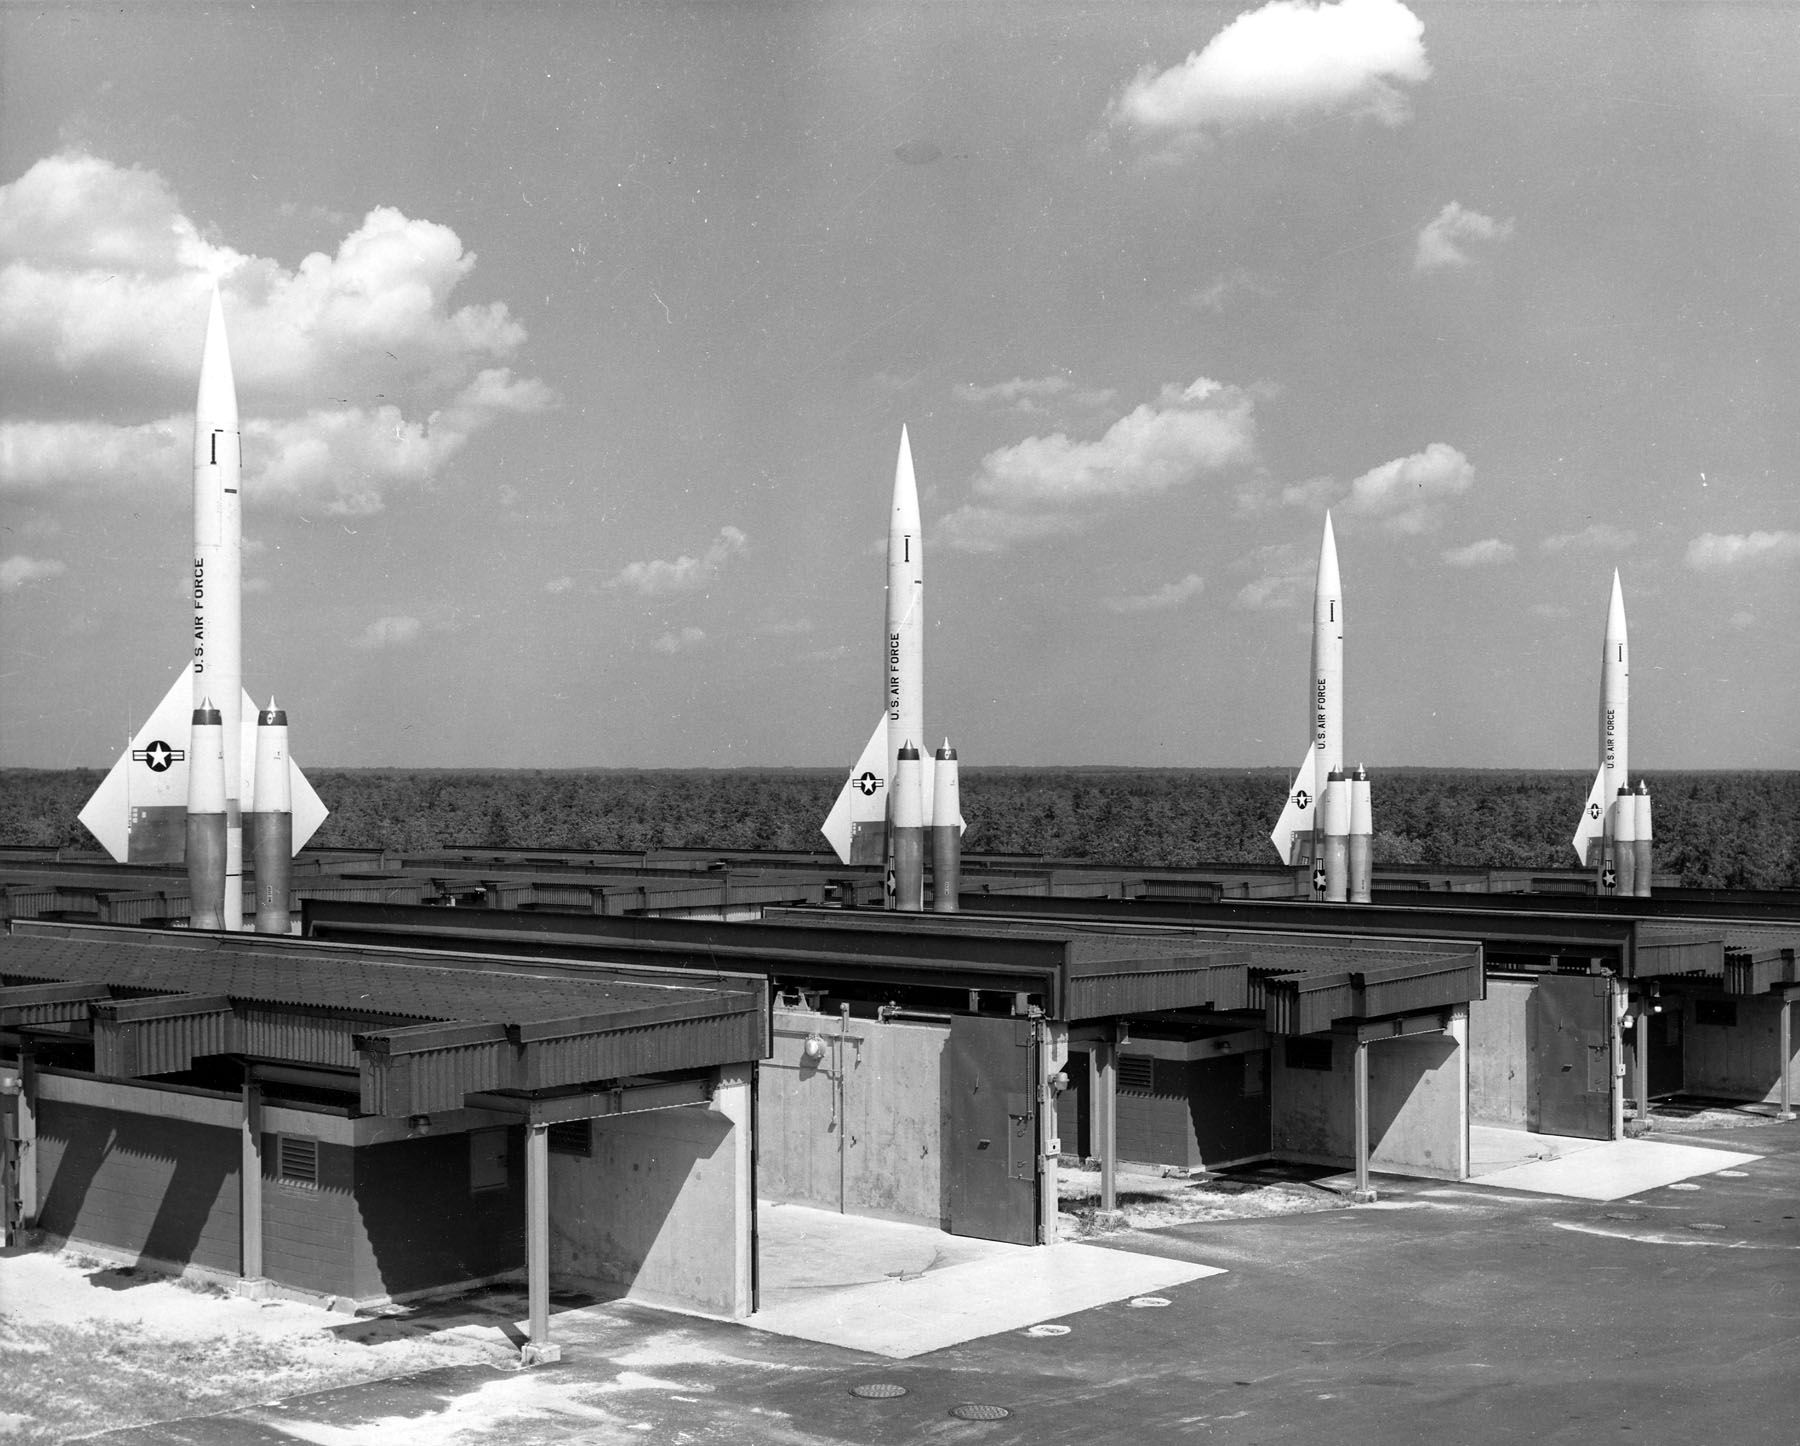 Four Of 56 U S Air Force Bomarc Im 99a Nuclear Antiaircraft Missiles Emplaced At A